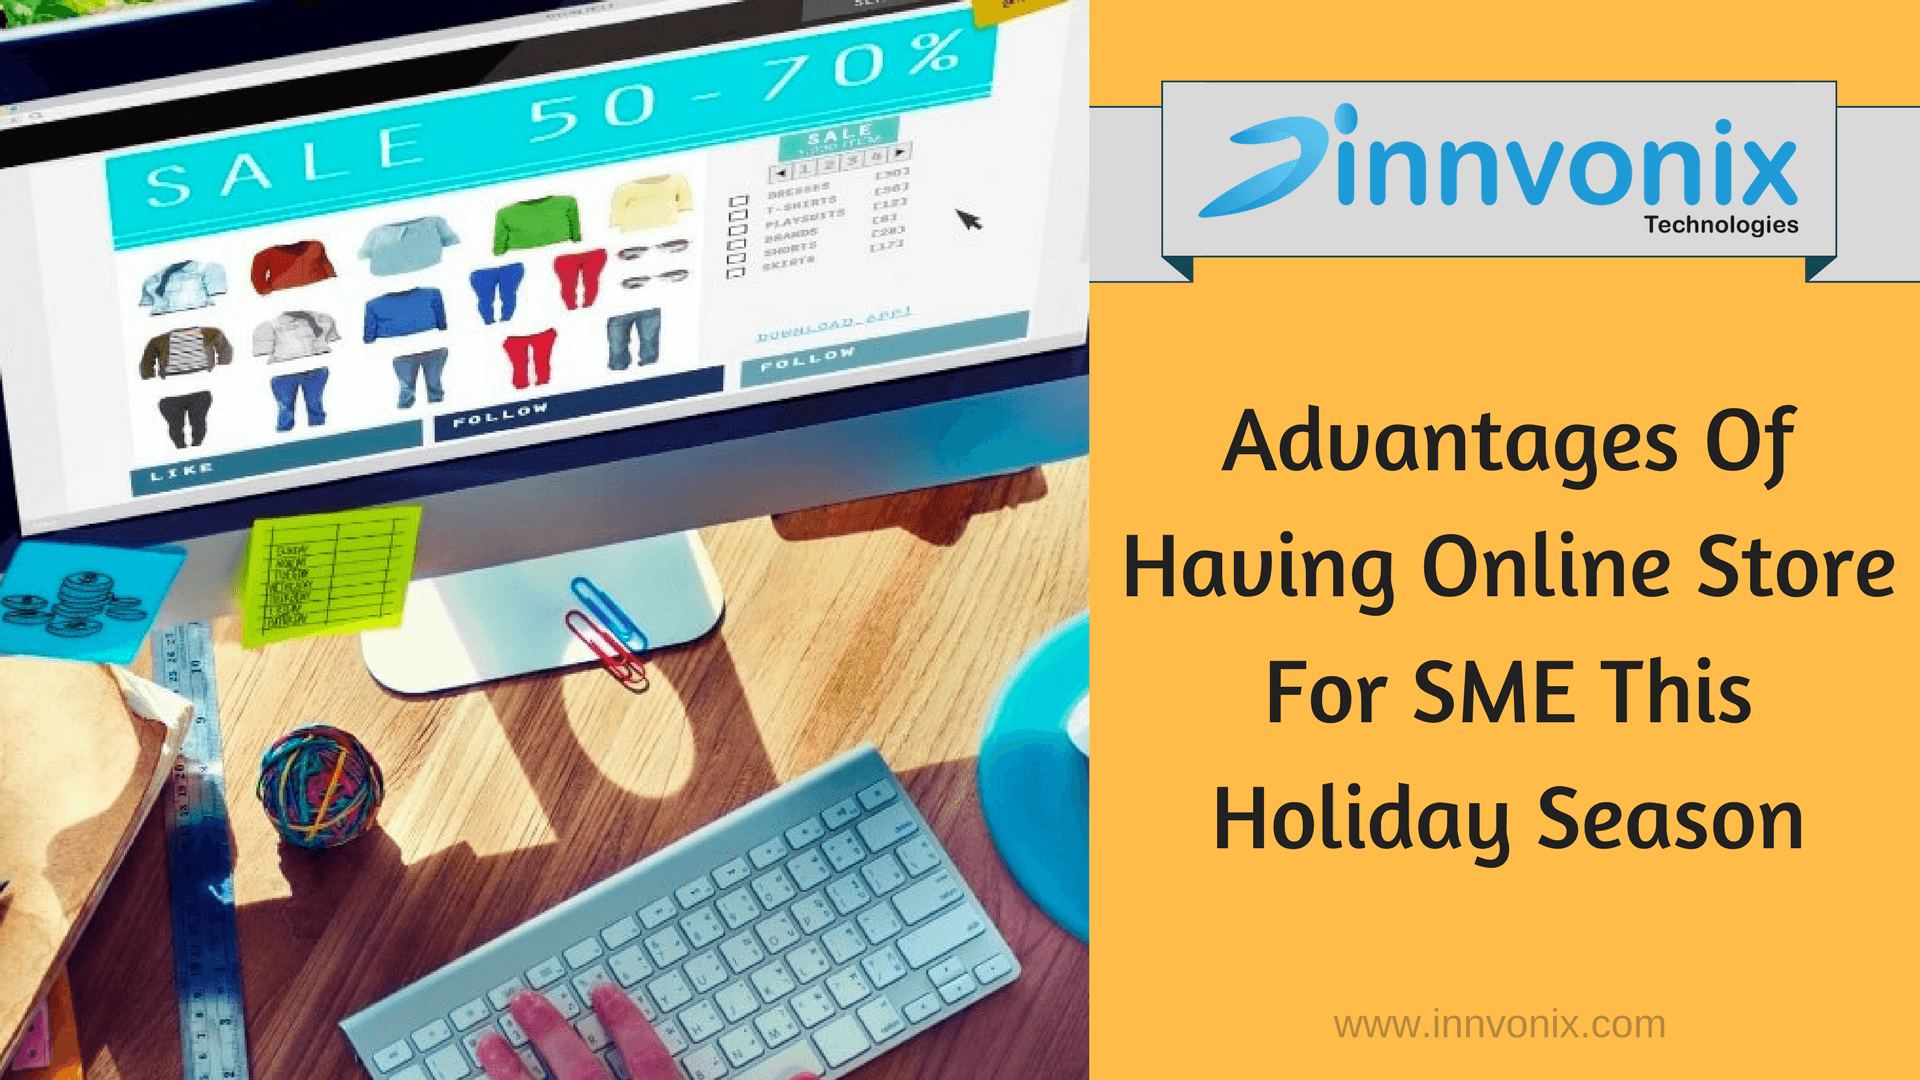 Advantages of having Online Store for SME this Holiday Season